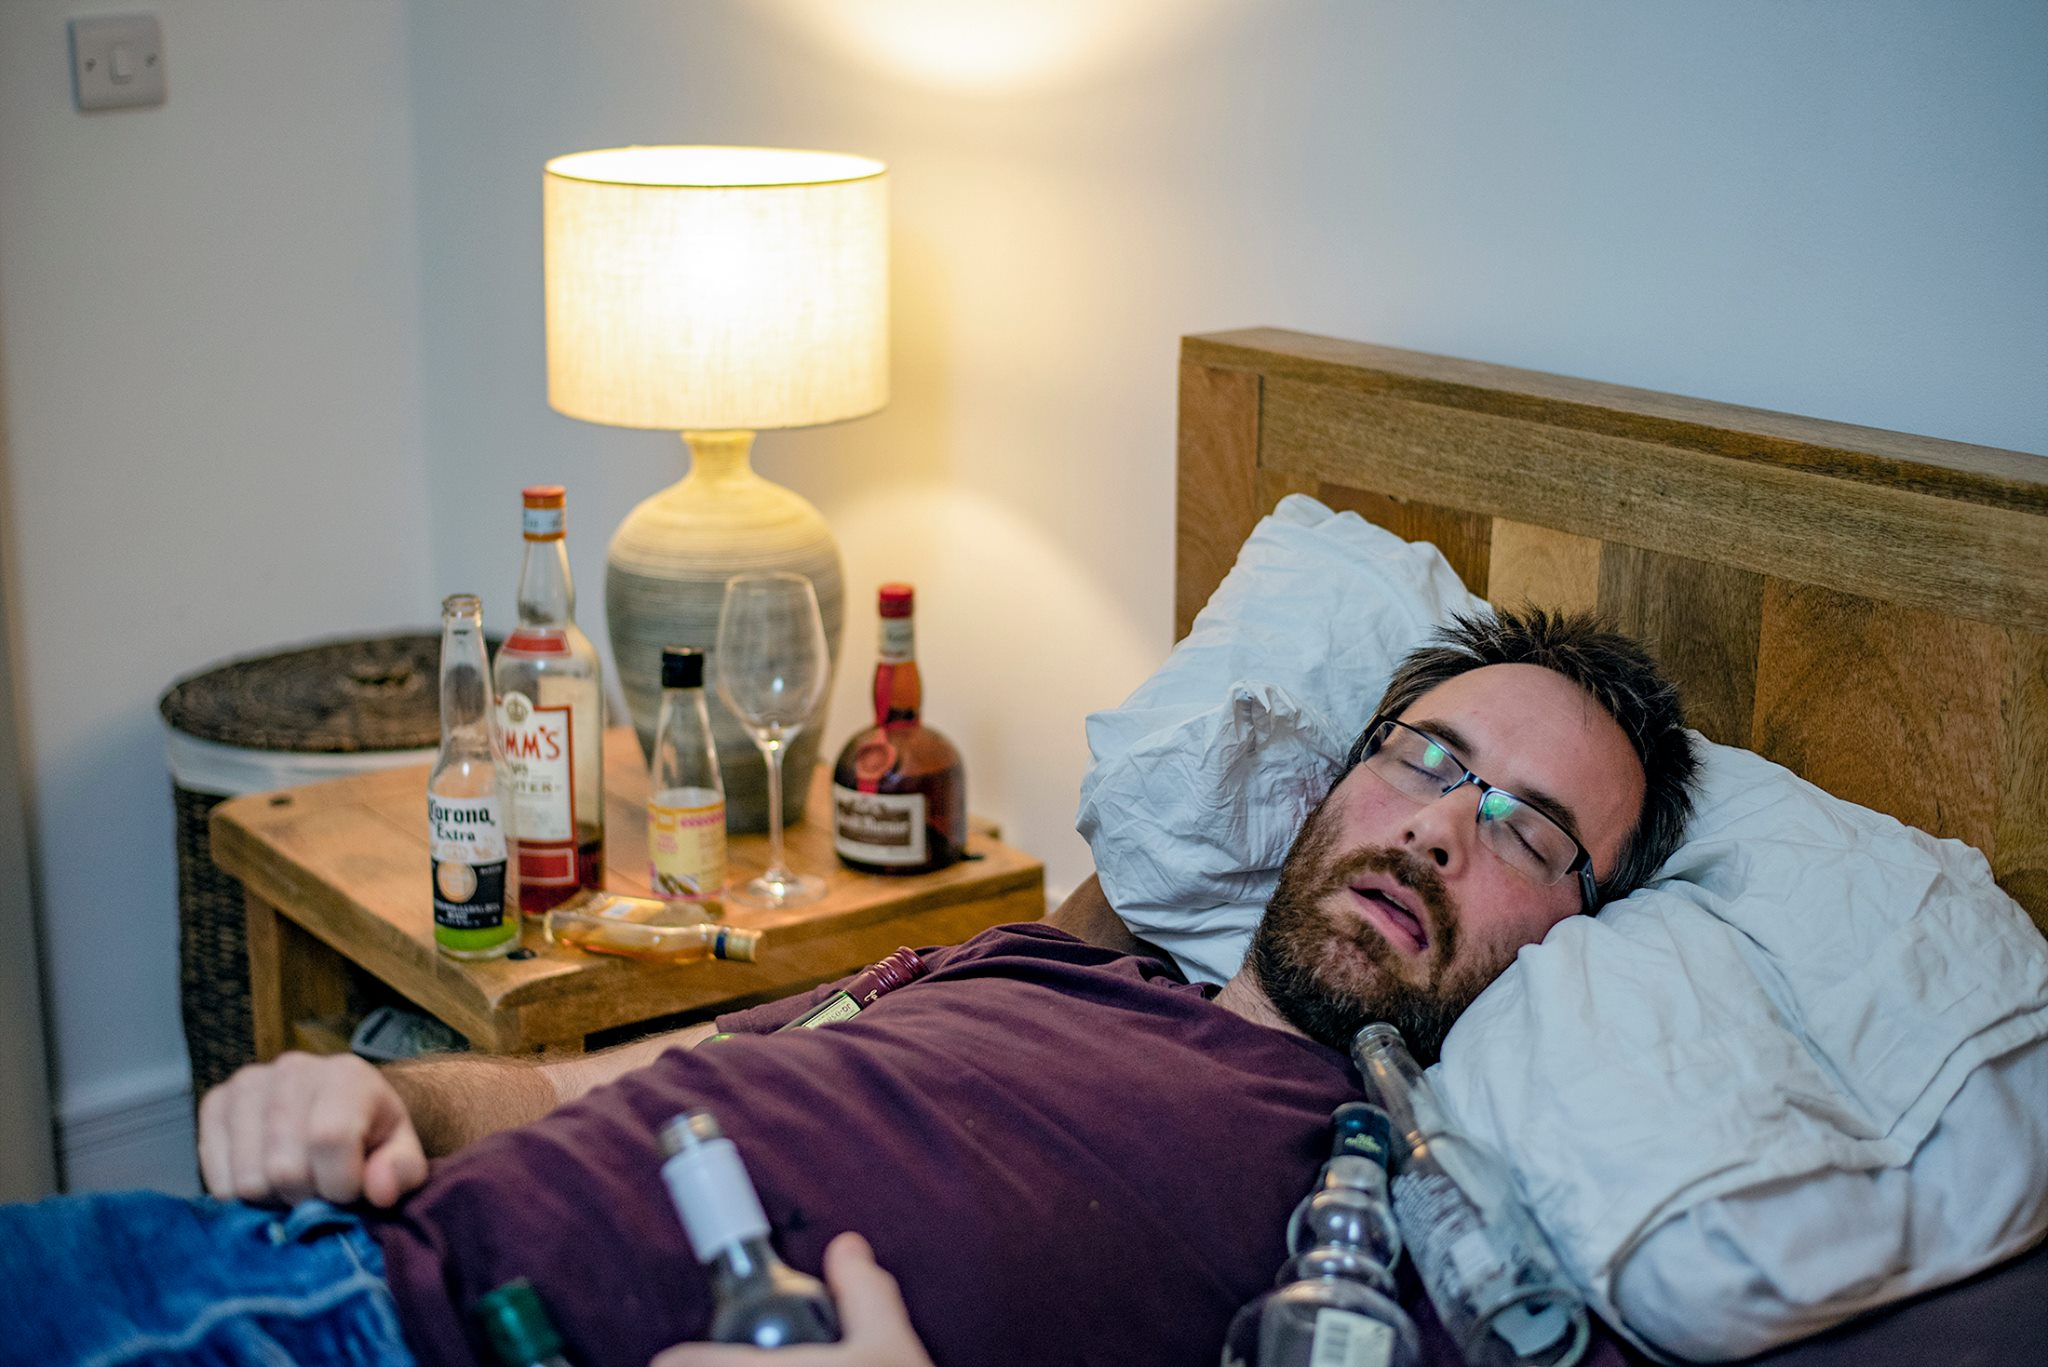 avoid alcohol - A glass is wine is fine the night before, but don't overdo it. Looking slightly green and hungover doesn't make a good headshot… Unless that's the role you are going for.